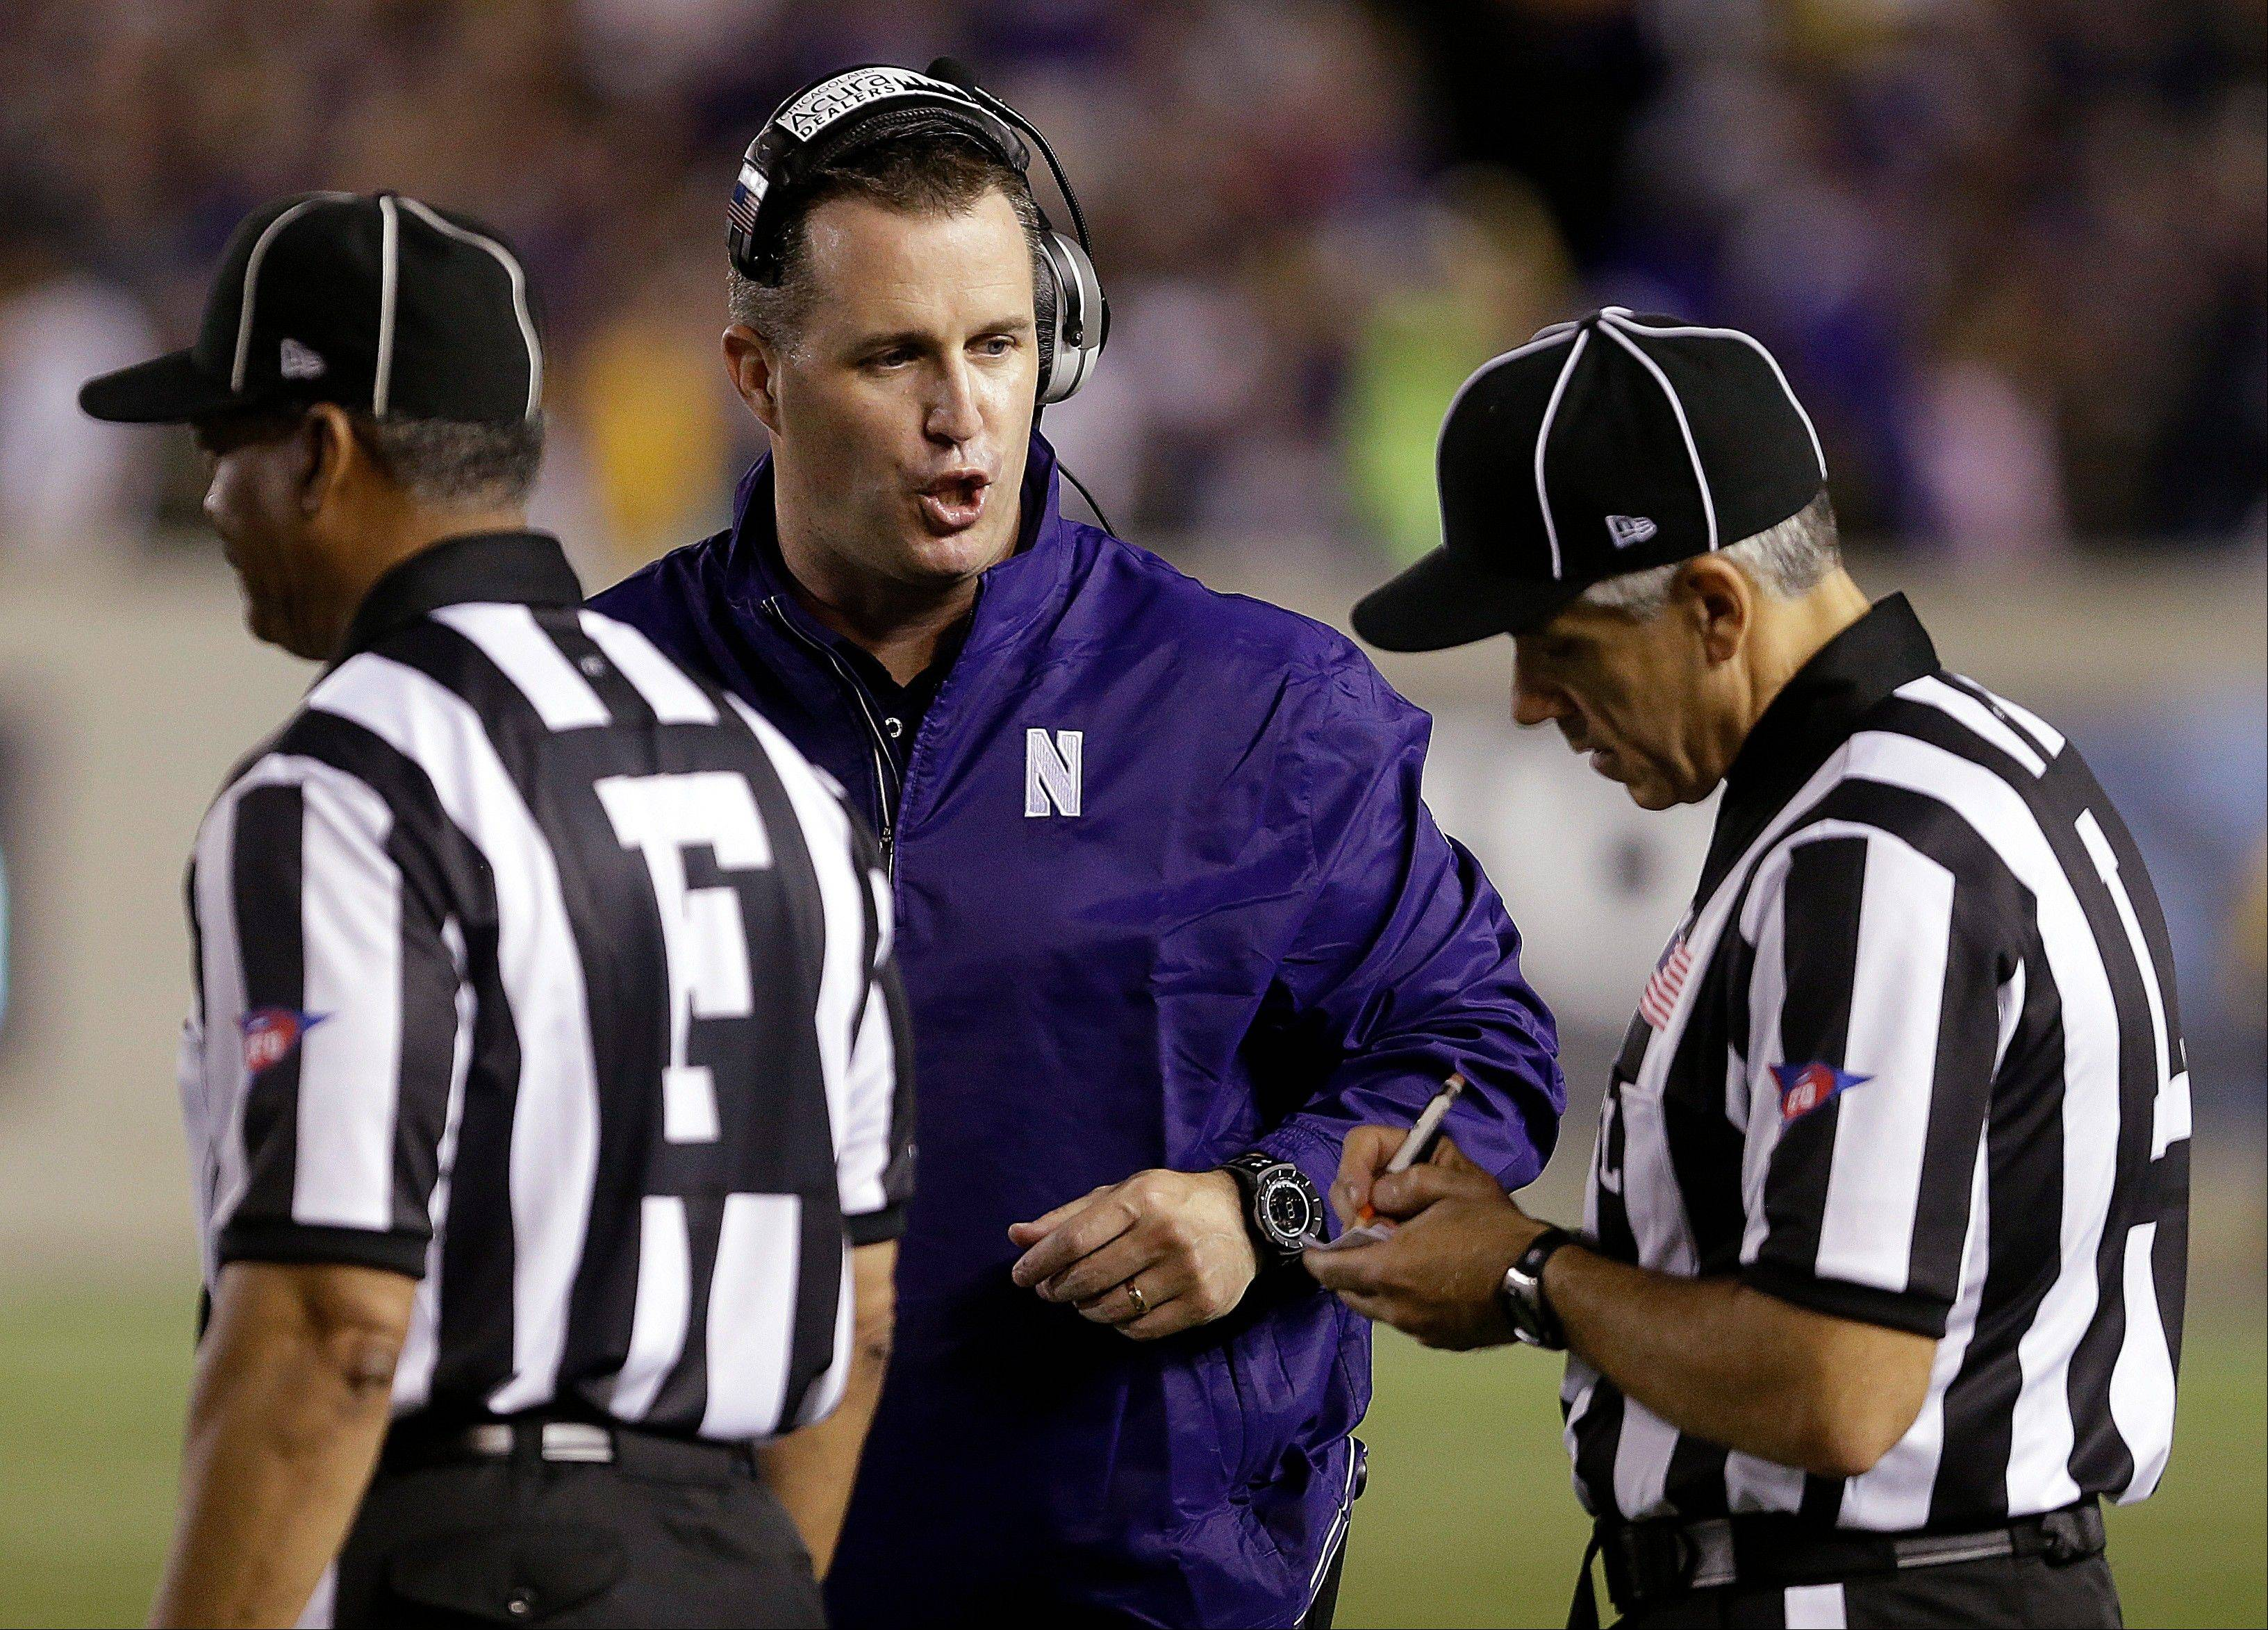 Northwestern coach Pat Fitzgerald speaks with referees during the first half of an NCAA college football game against California on Saturday, Aug. 31, 2013, in Berkeley, Calif. (AP Photo/Ben Margot)